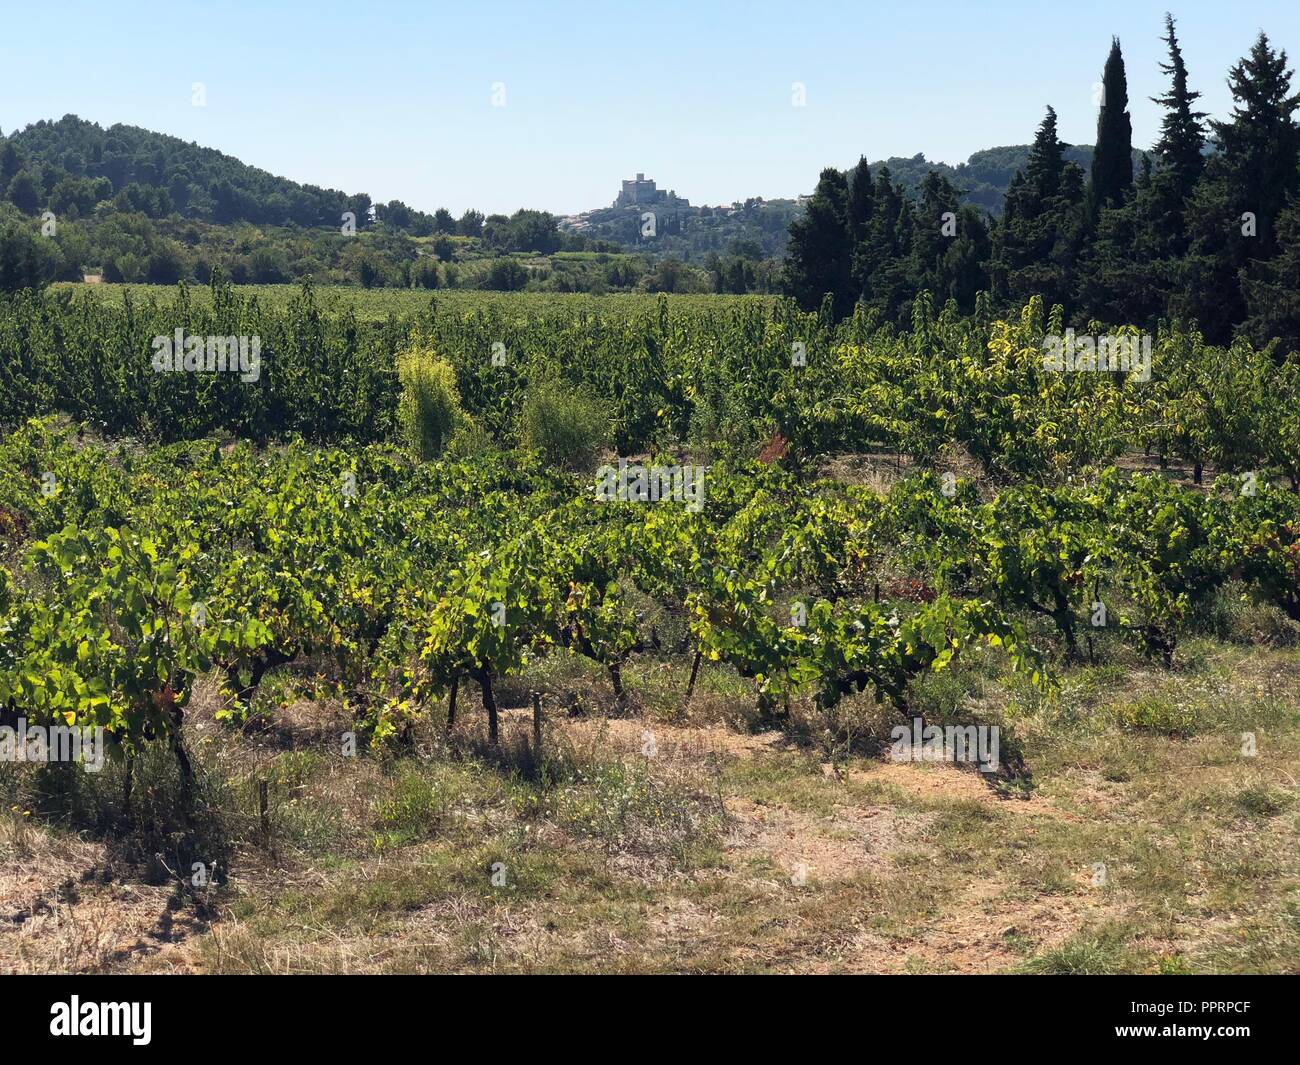 Grapevines in traditional Provencal landscape in late summer before harvest - Stock Image